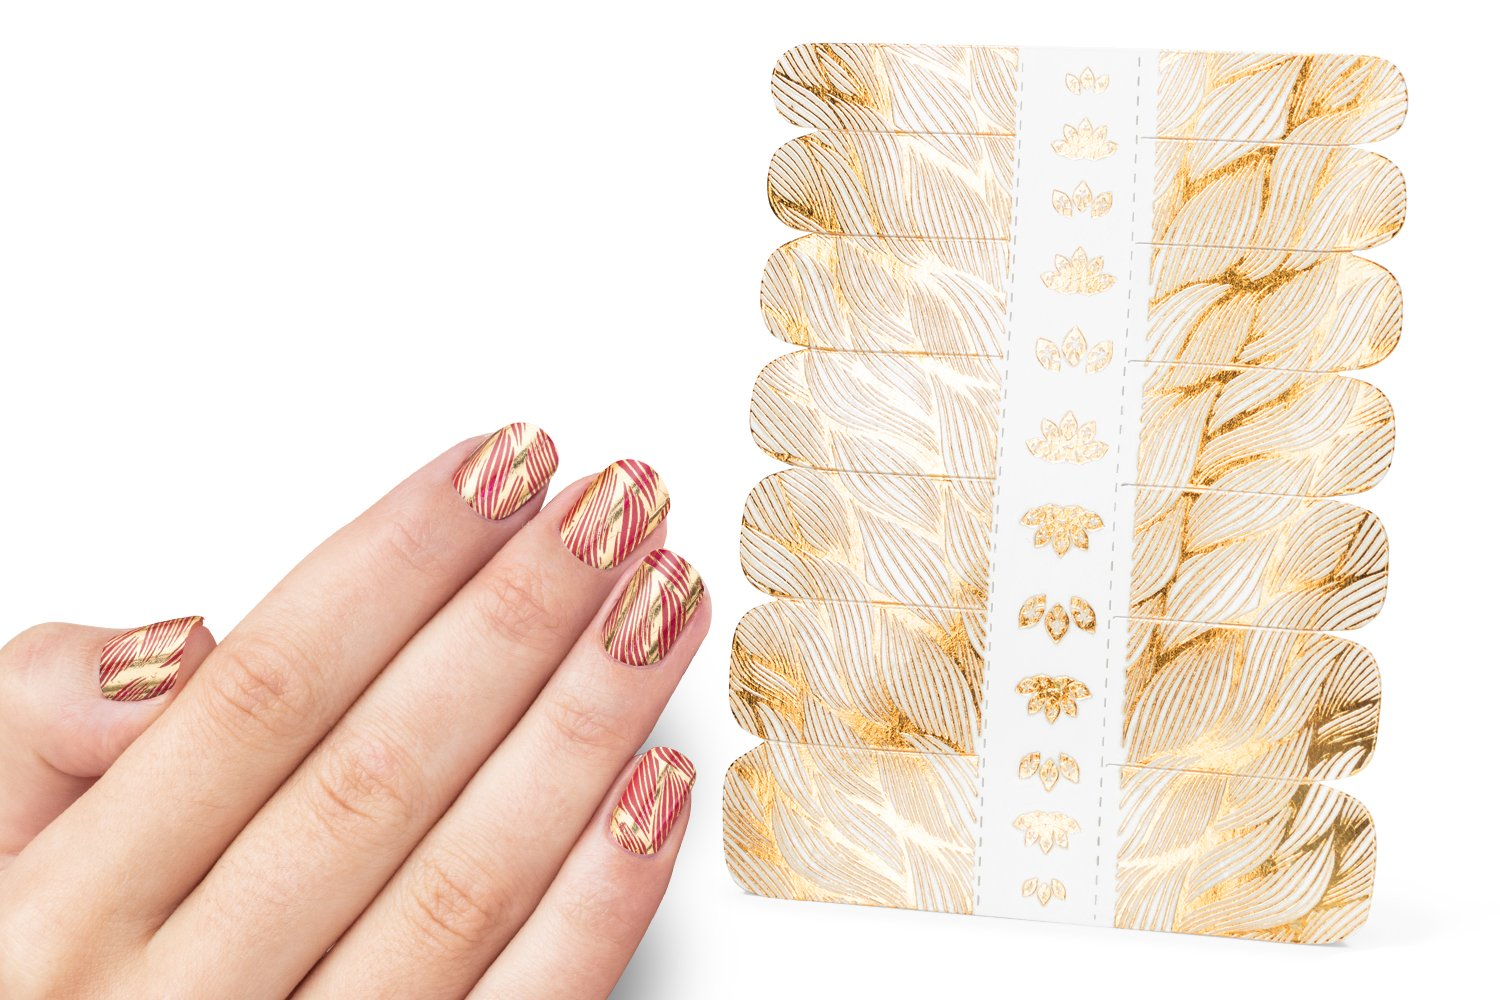 Nail Decals, Nail Tattoos Stickers, Water Nail Decals, Gold and Colorful Designs, Very easy to use for manicure. Each pakage consist Decals for 14 fingers. Brand MneTatu (Weaving)